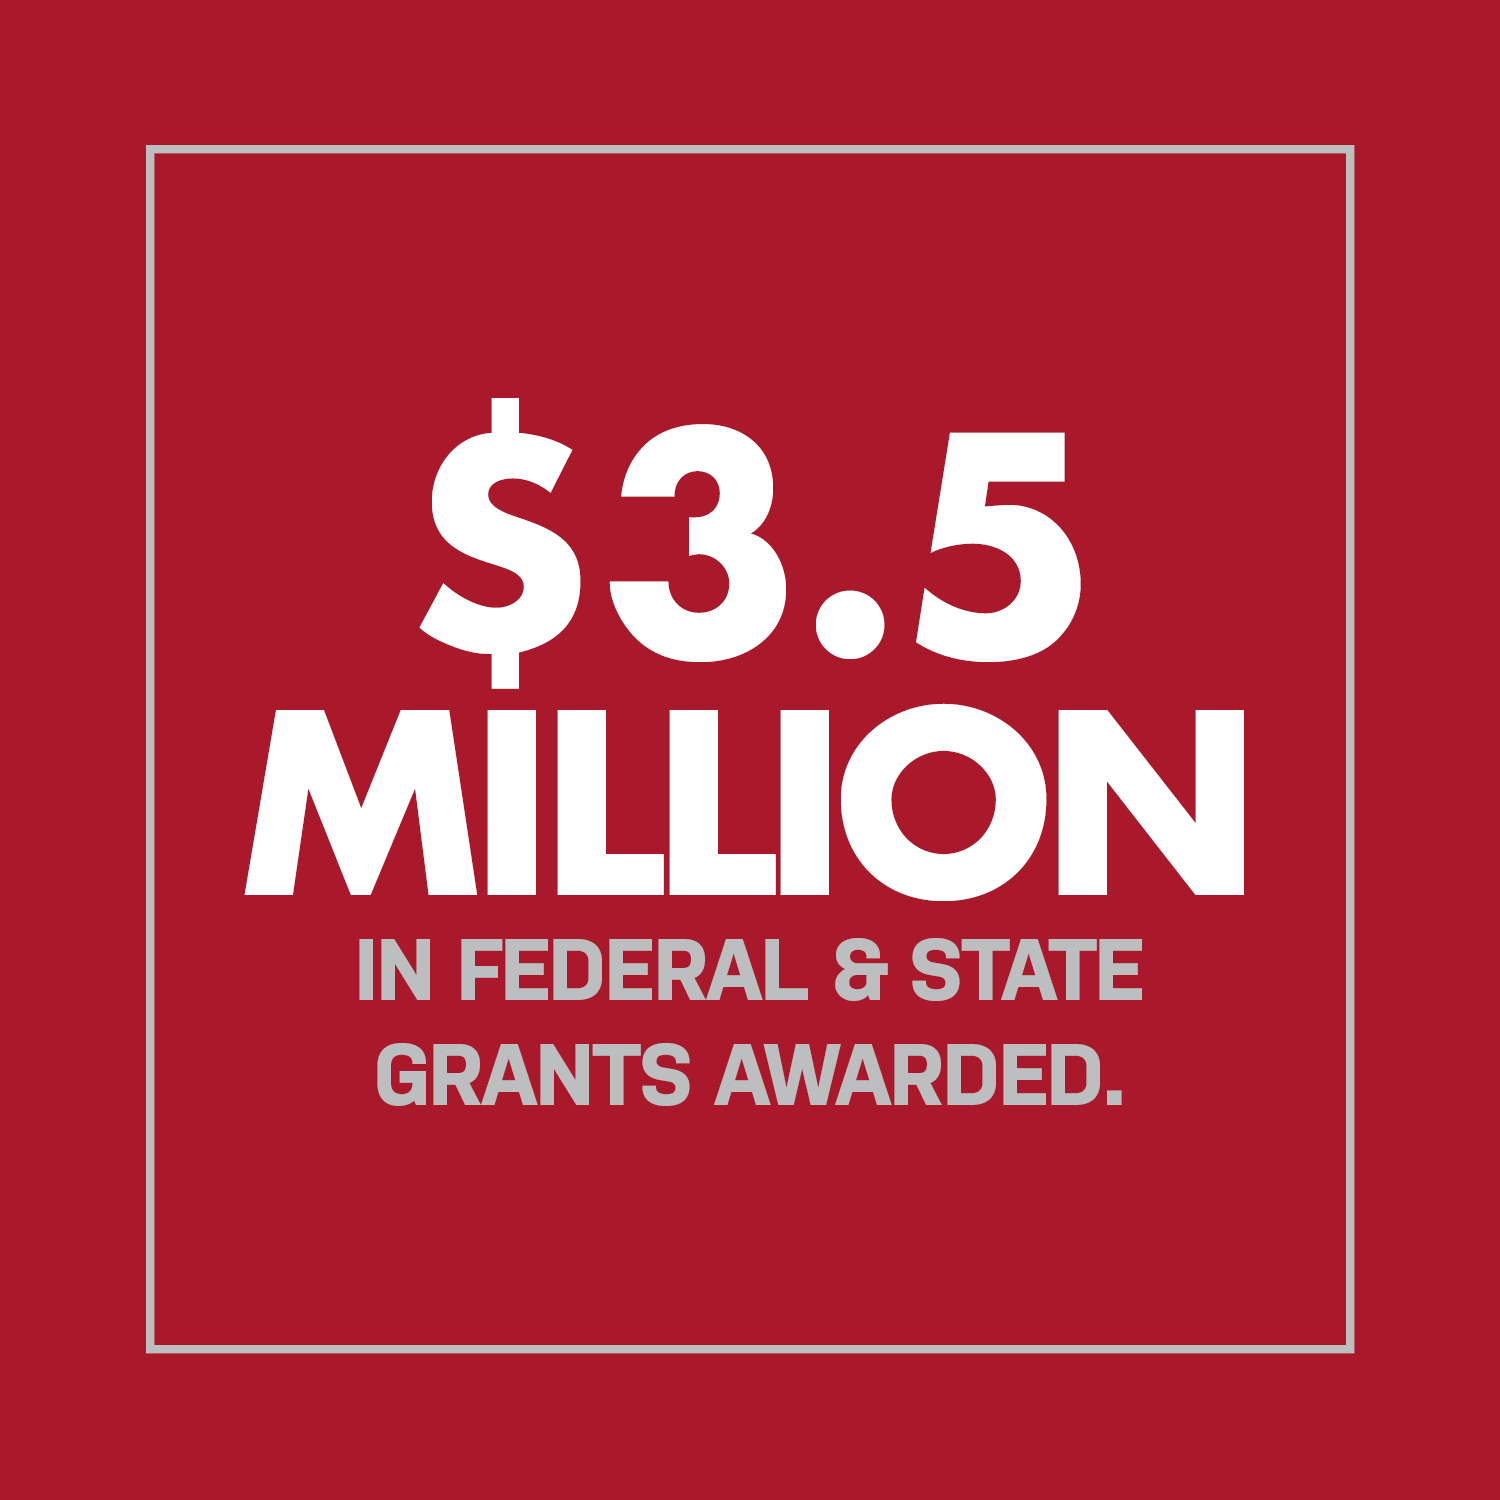 $3.5 Million in Federal & State Grants Awarded.